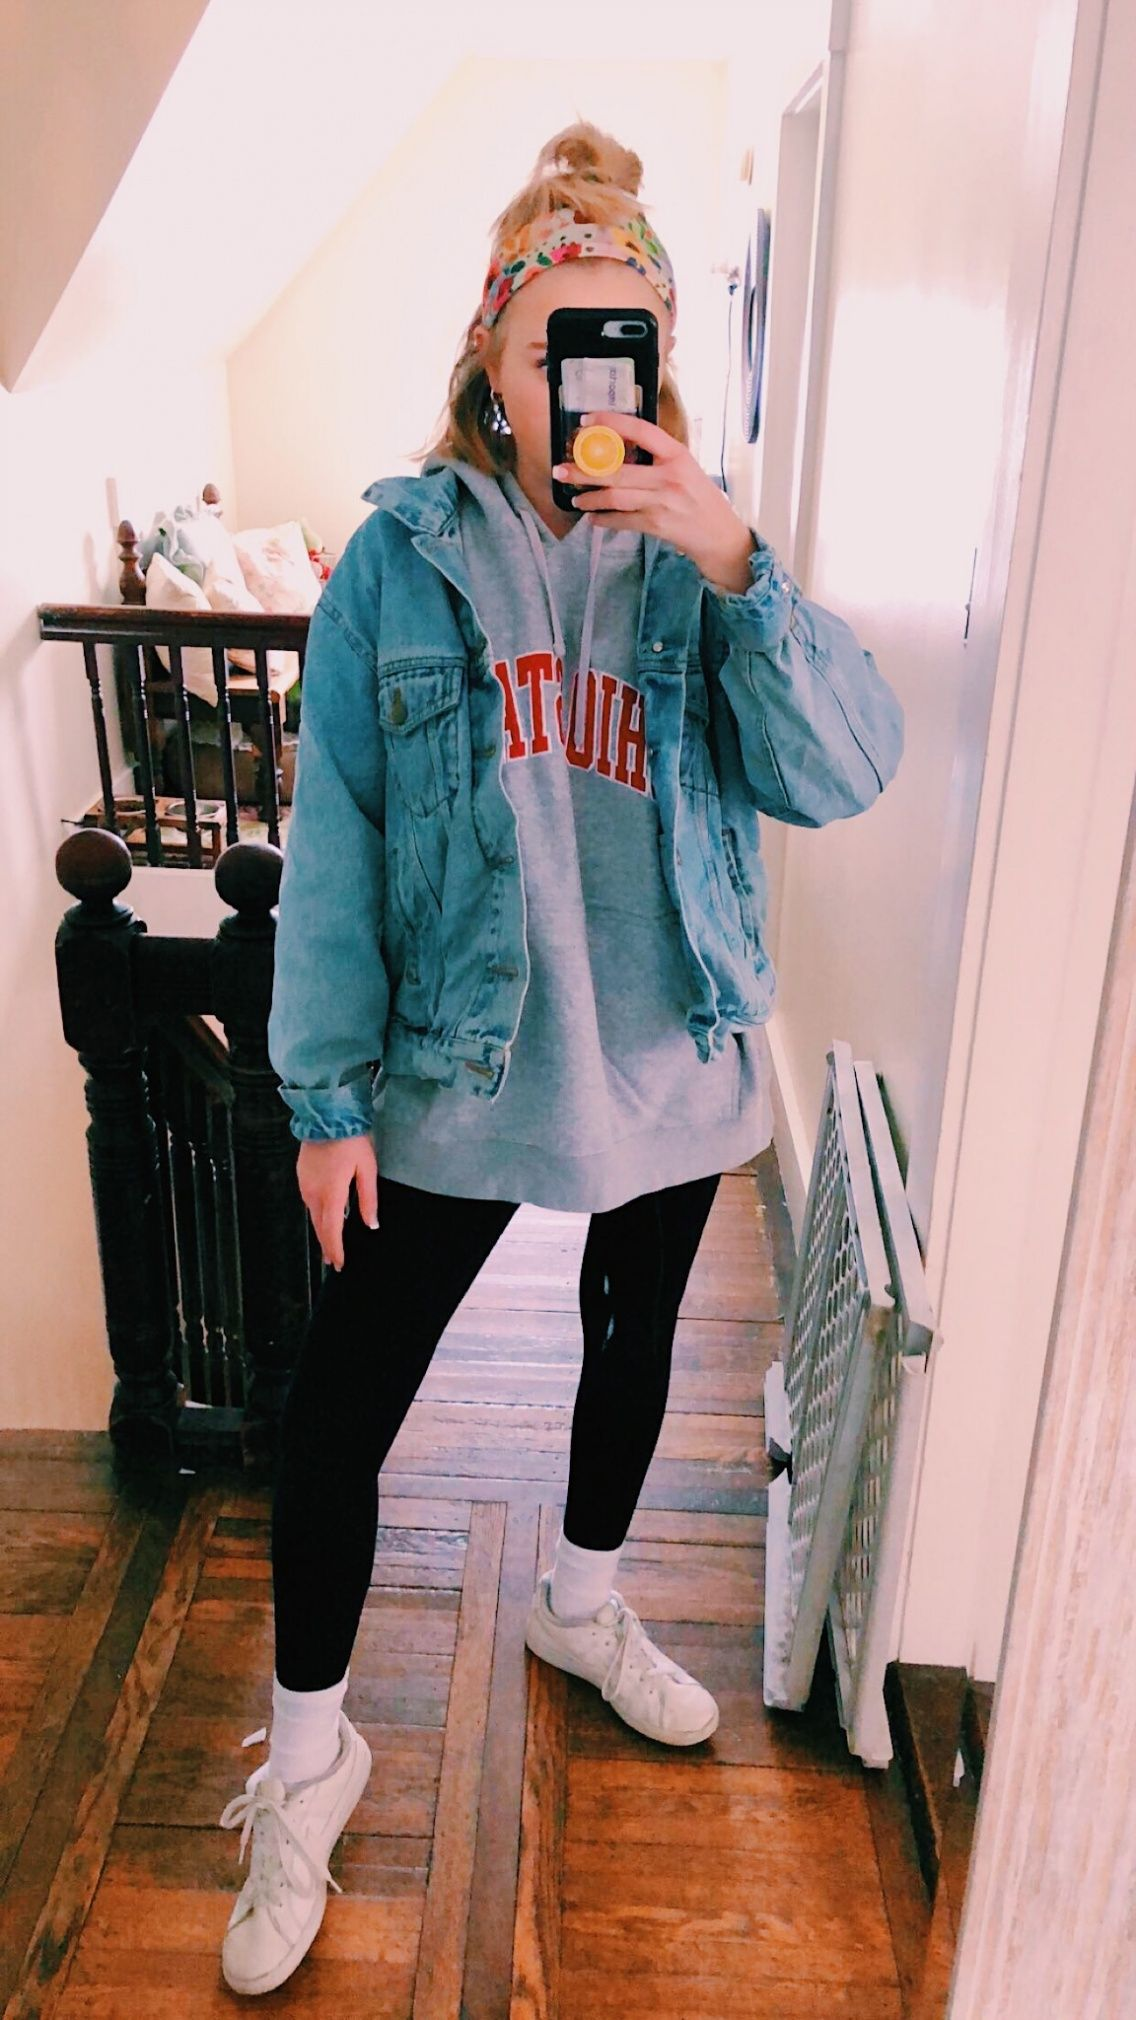 ✰𝙋𝙄𝙉𝙏𝙀𝙍𝙀𝙎𝙏: @Heeybiia  Casual school outfits, Outfits